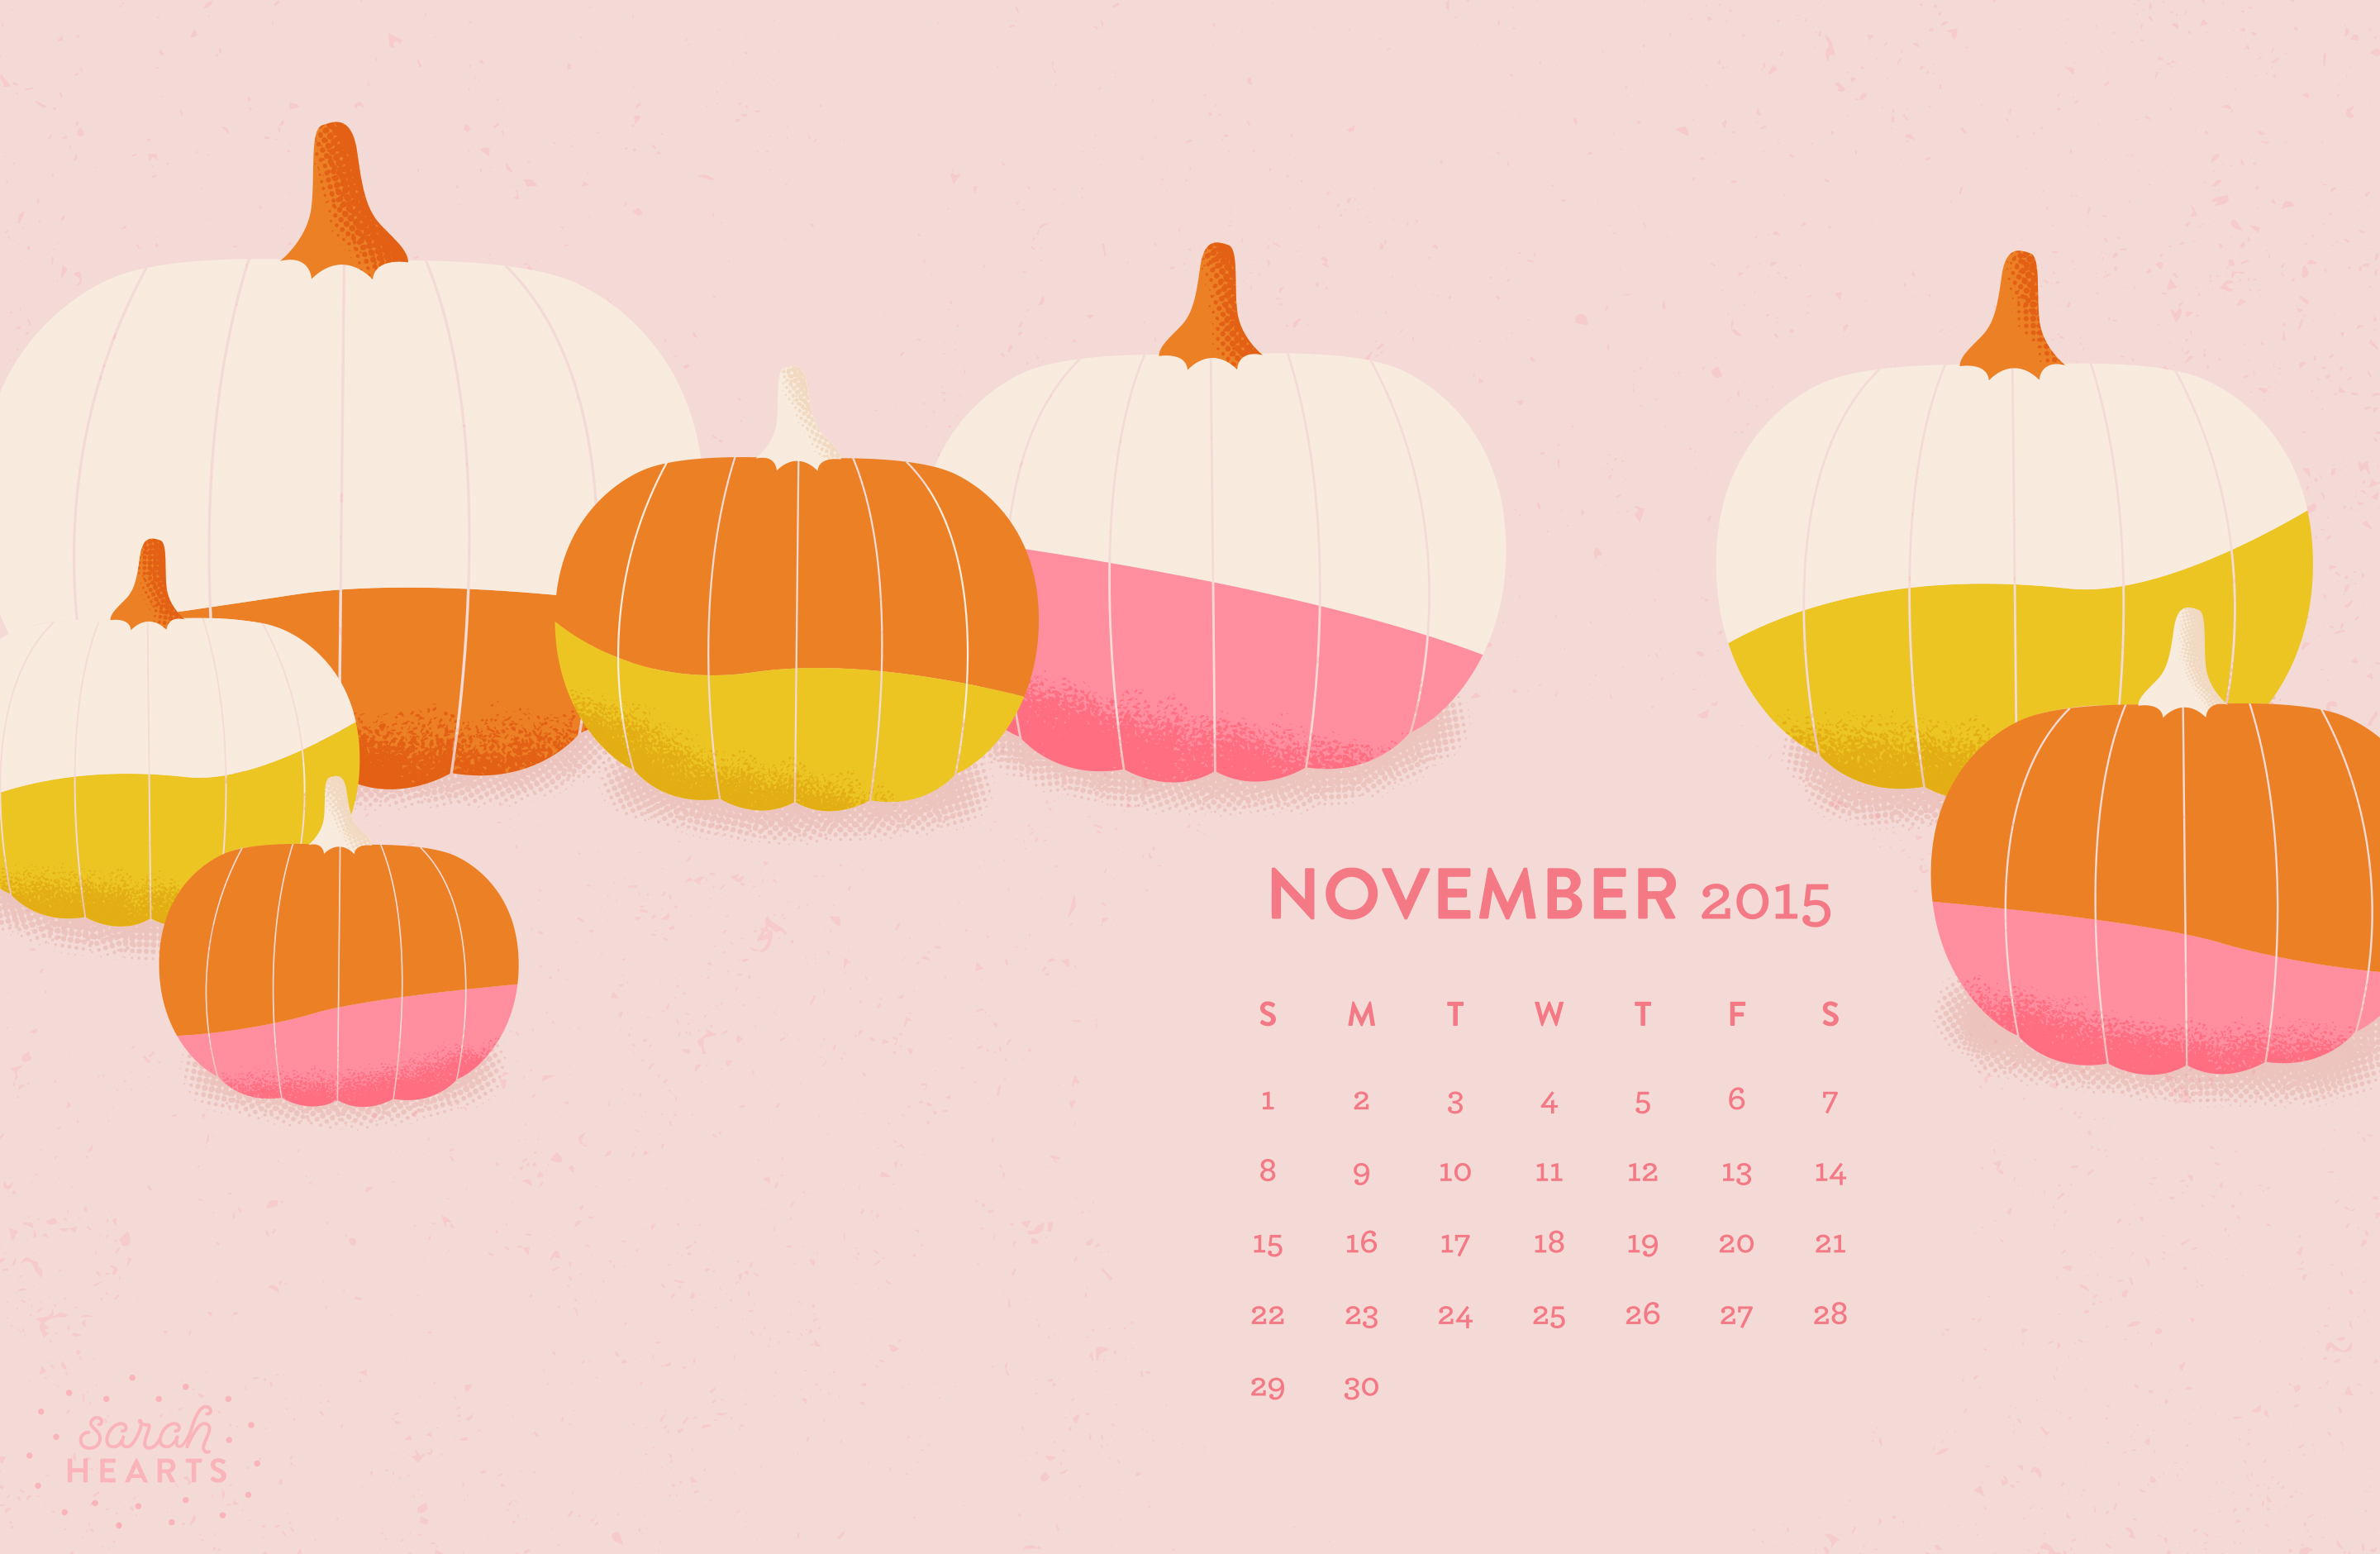 November 2015 Calendar Wallpaper   Sarah Hearts 2880x1880